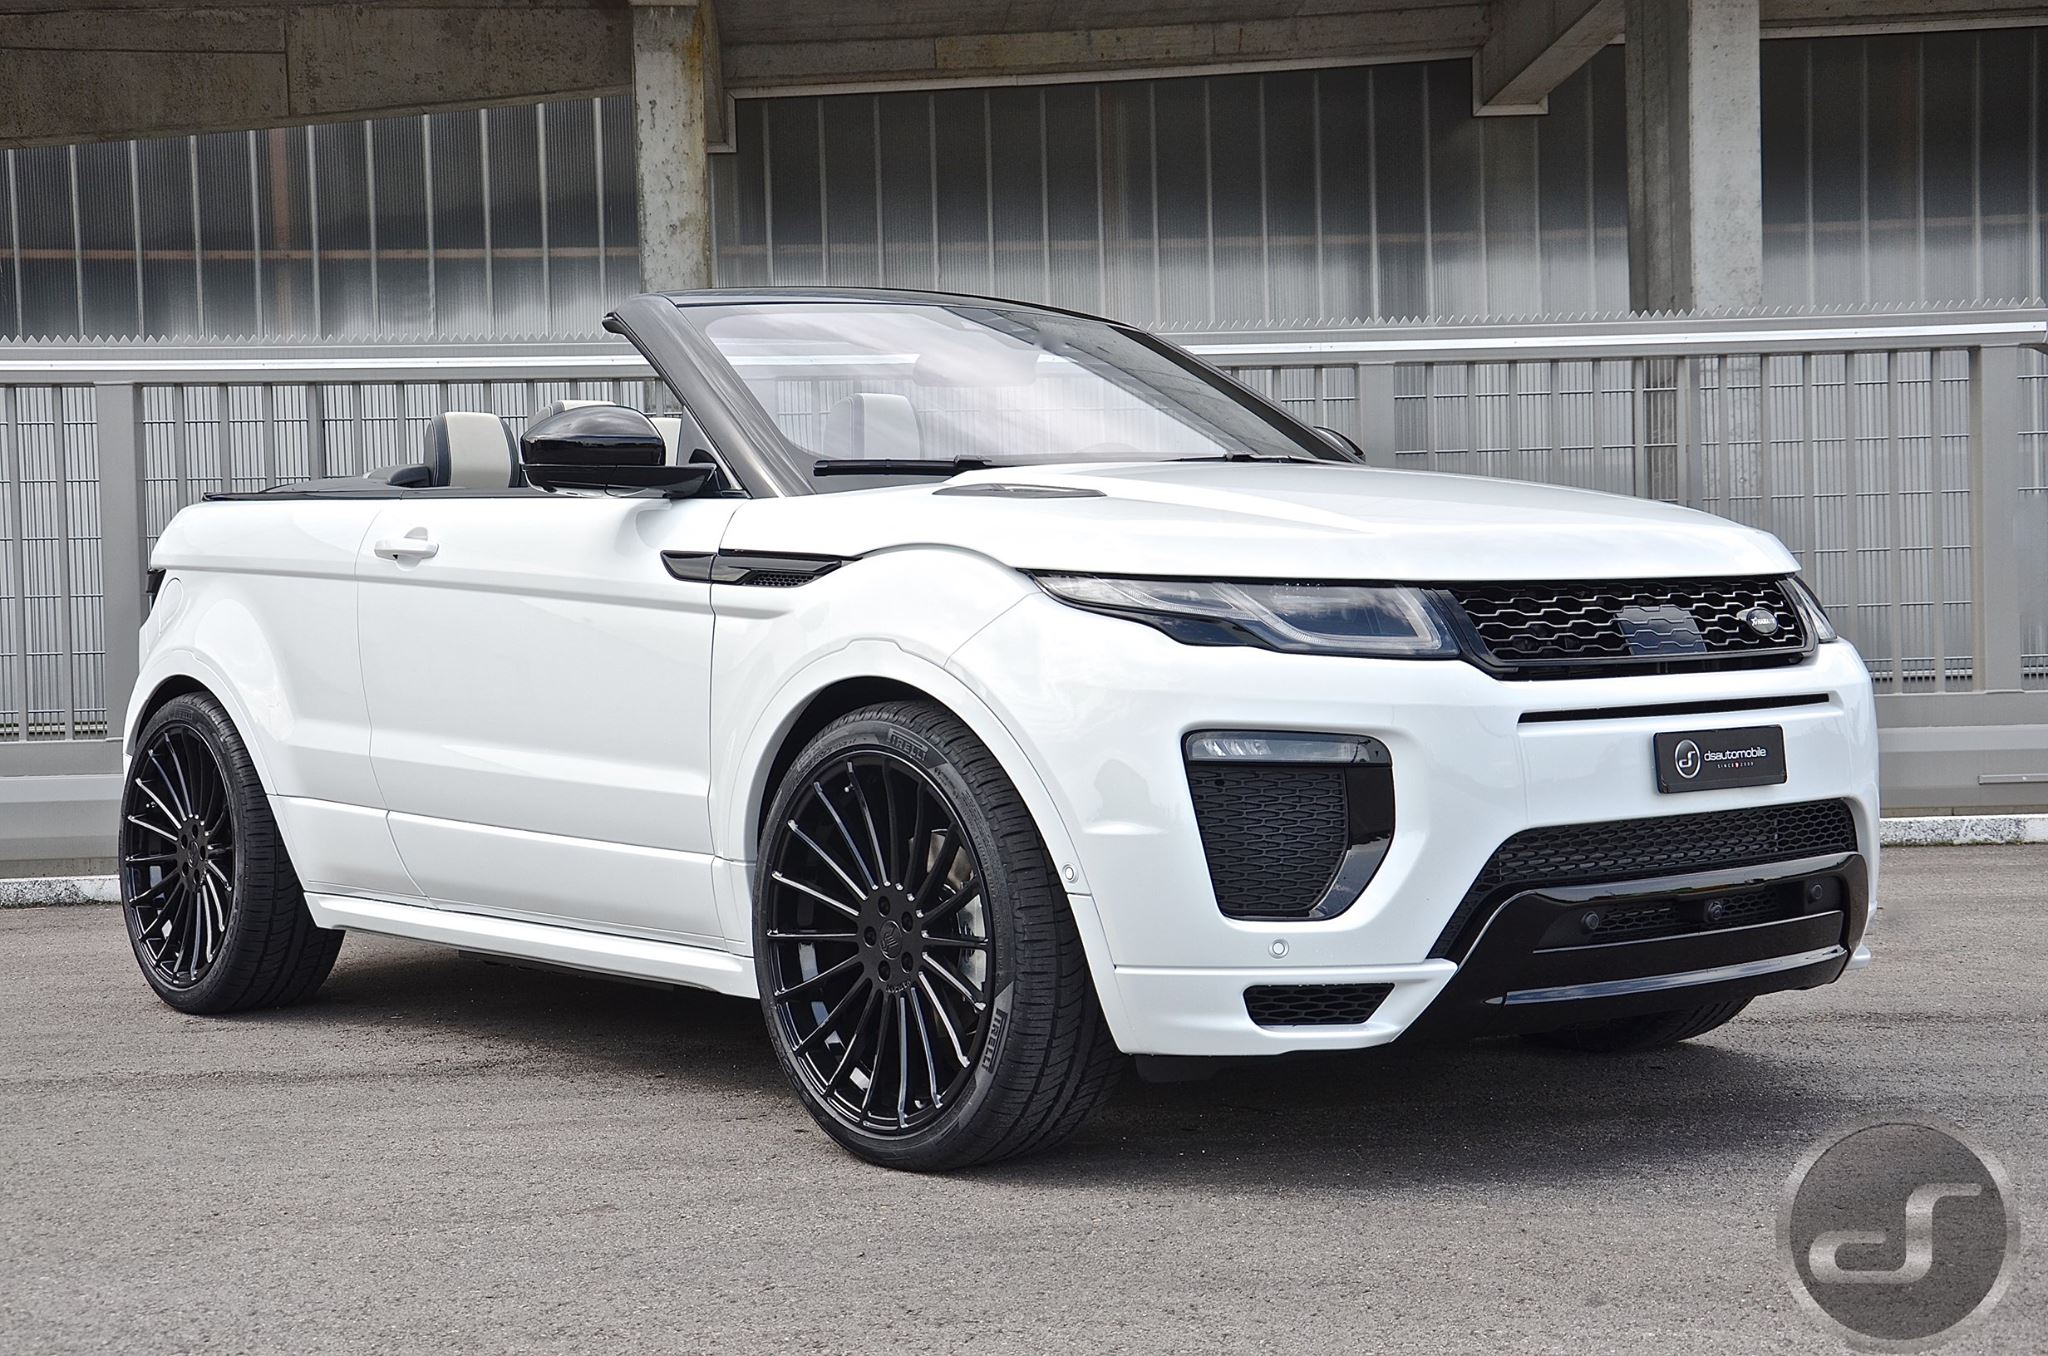 The First Tuned Range Rover Evoque Cabrio Wears Hamann Kit